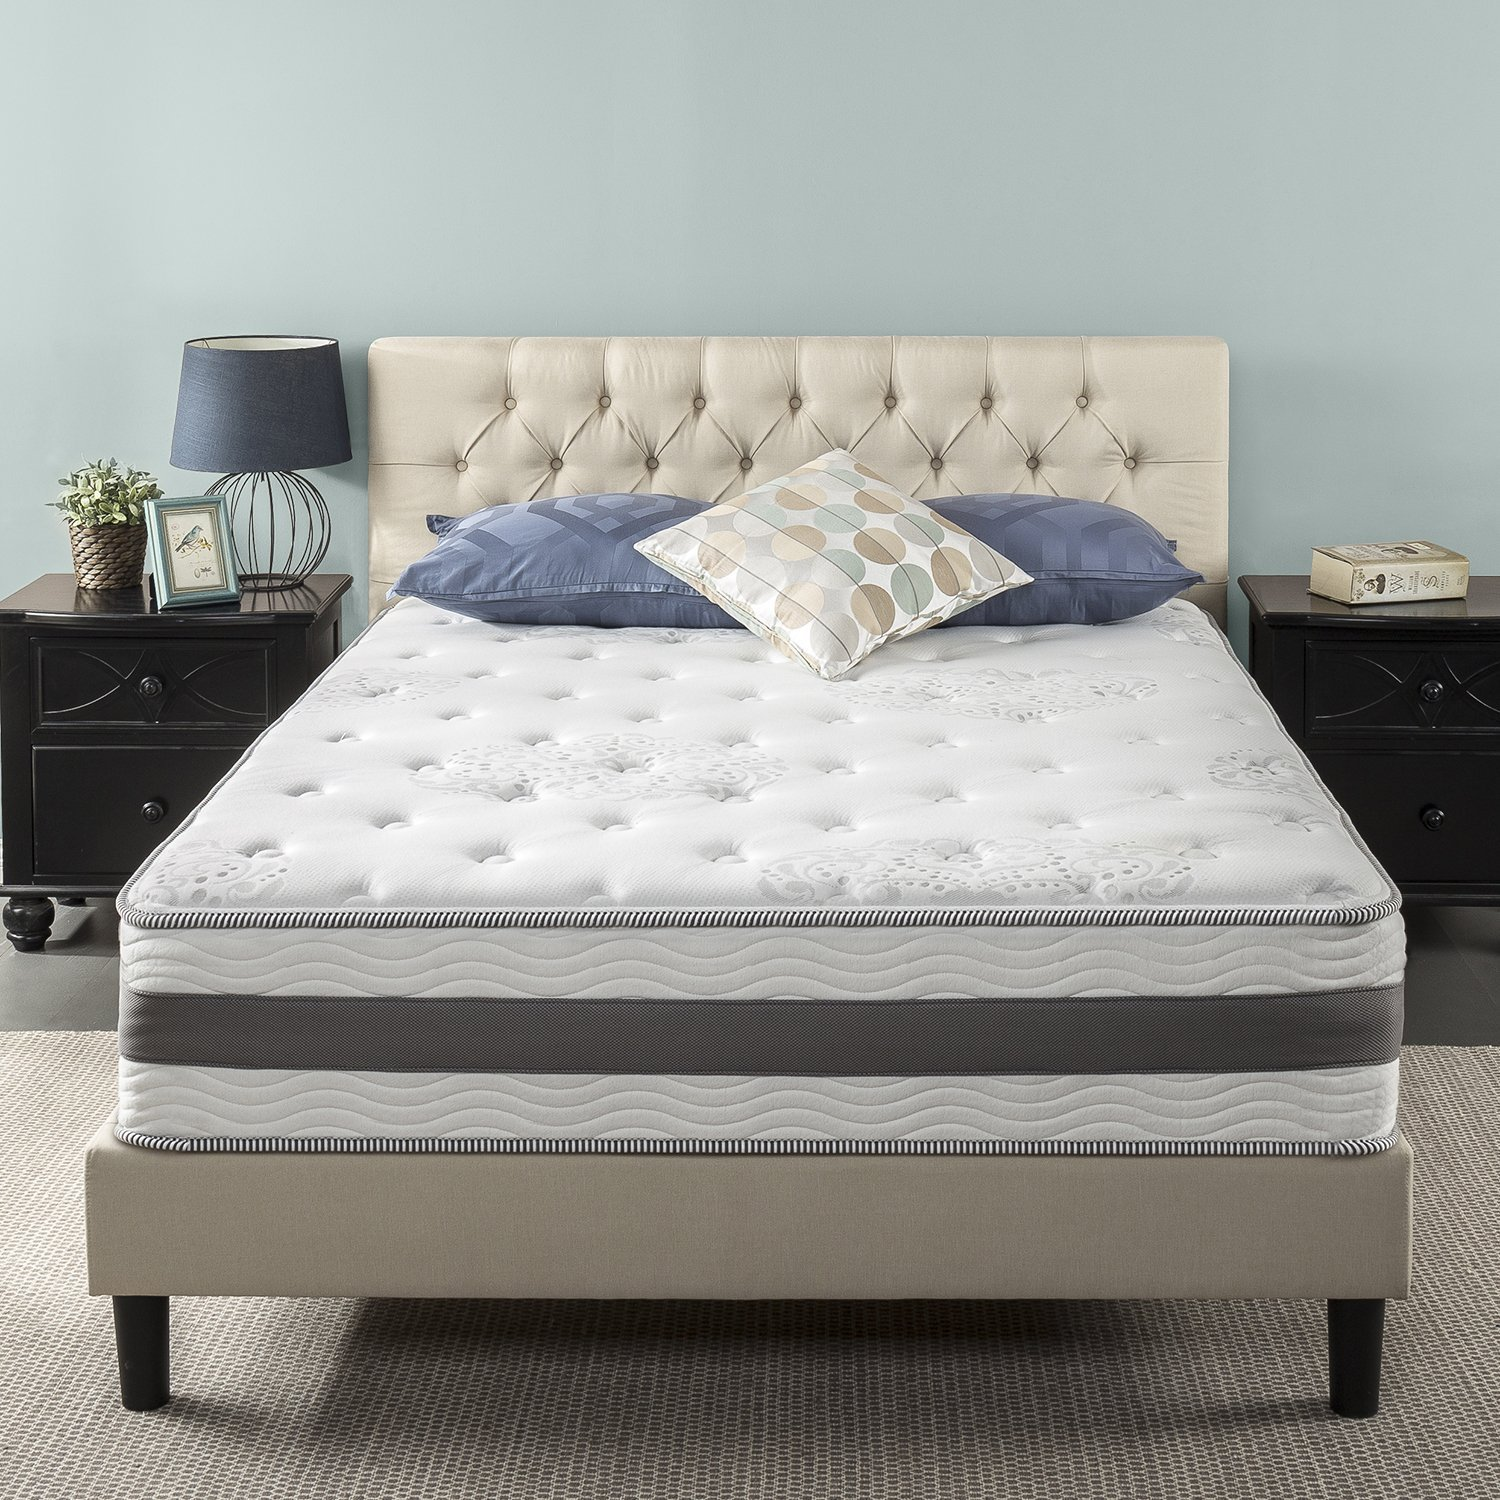 Zinus 12 inch Gel Infused Memory Foam Hybrid Mattress